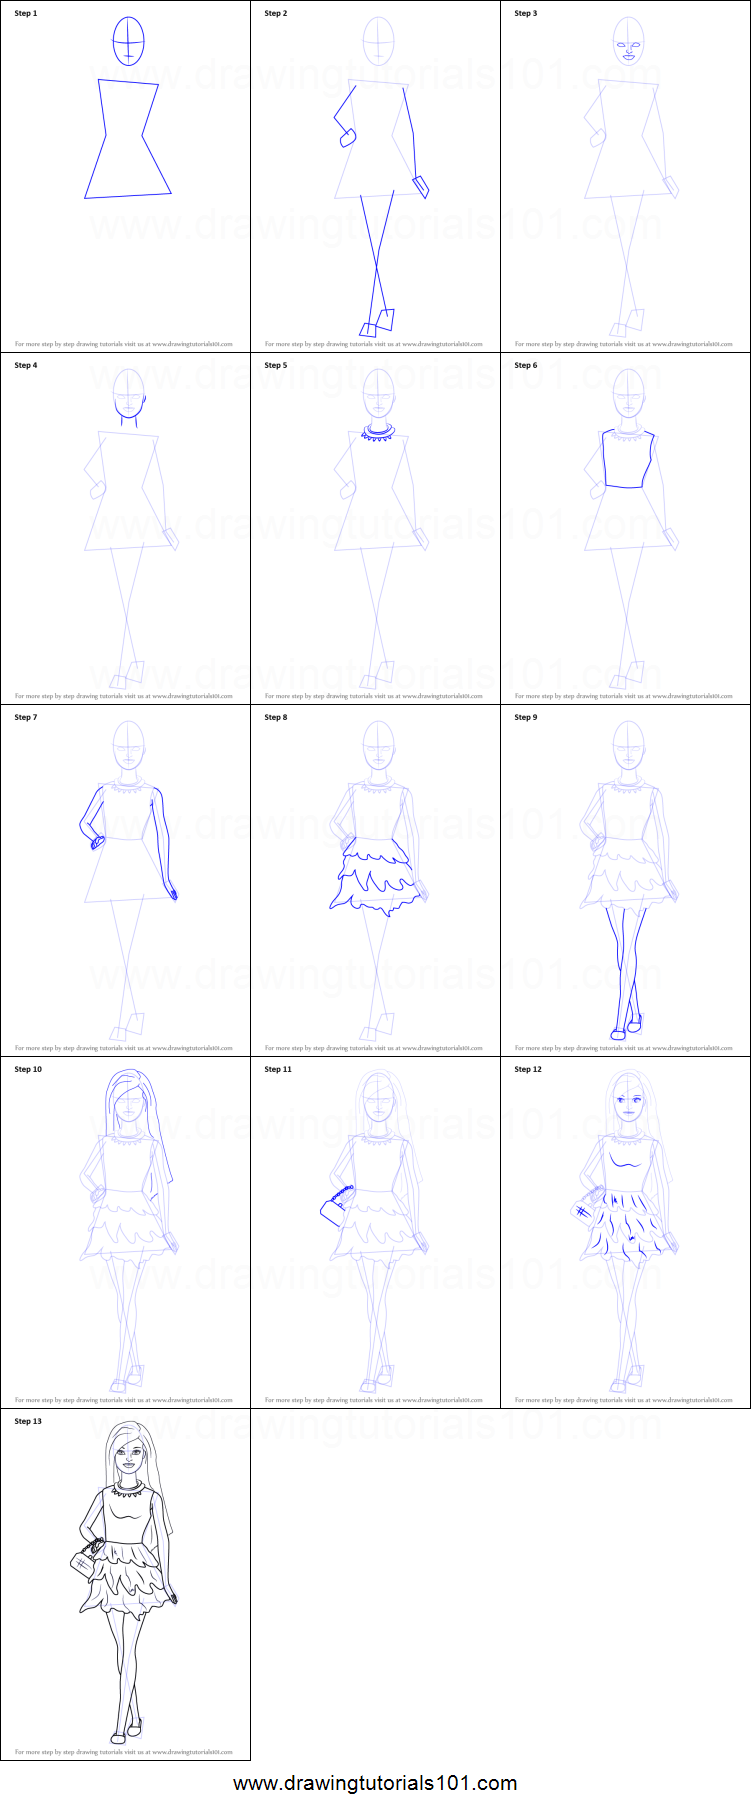 How To Draw Barbie Doll In Skirt Printable Step By Step